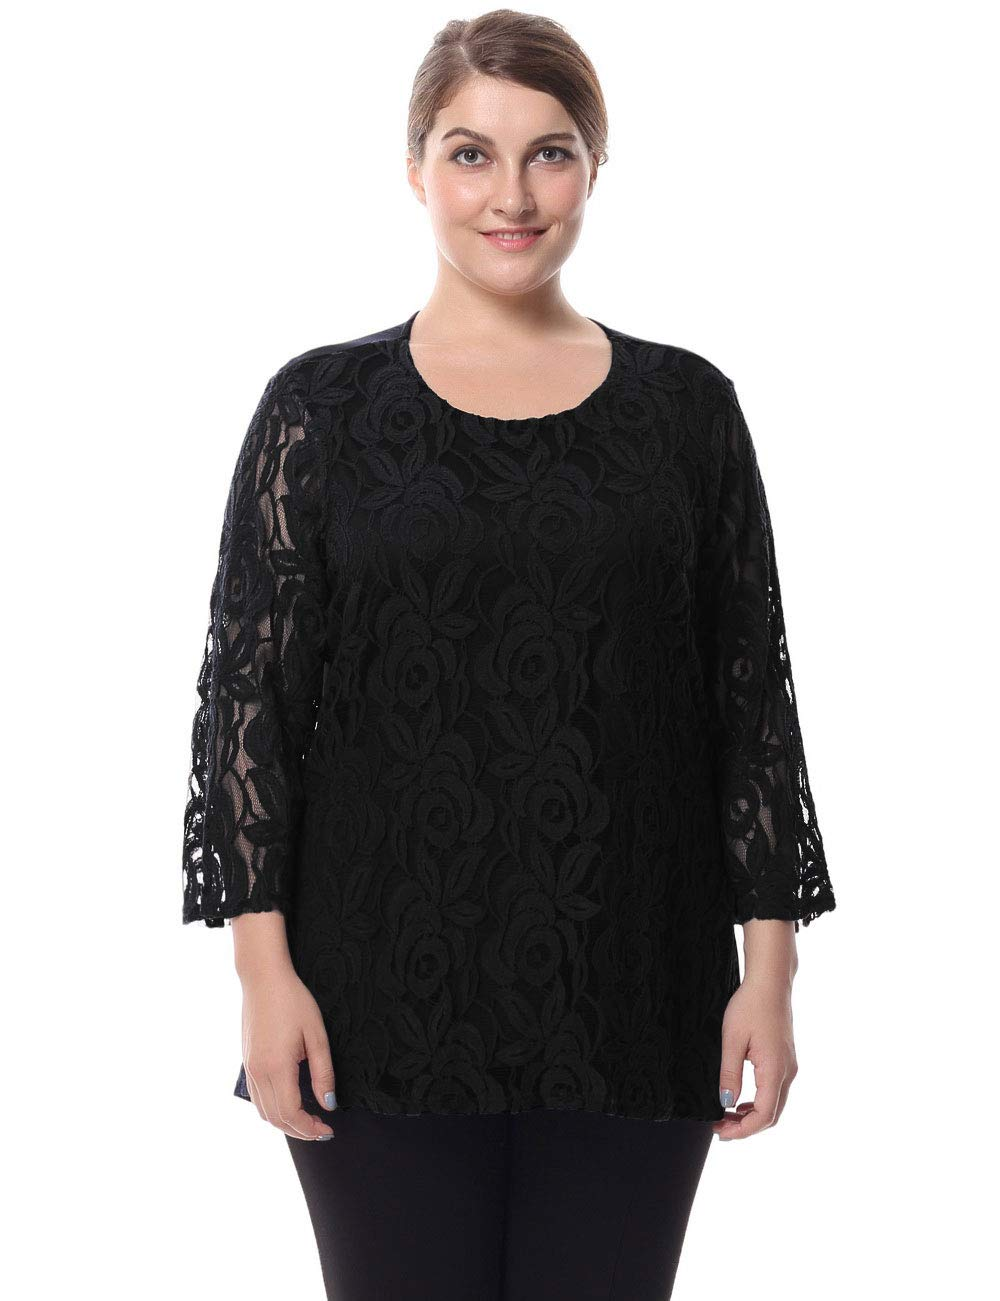 Chicwe Women's Plus Size Lined Lace Top Blouse - Round Neck 3/4 Sleeves Work and Casual Top Black 3XL